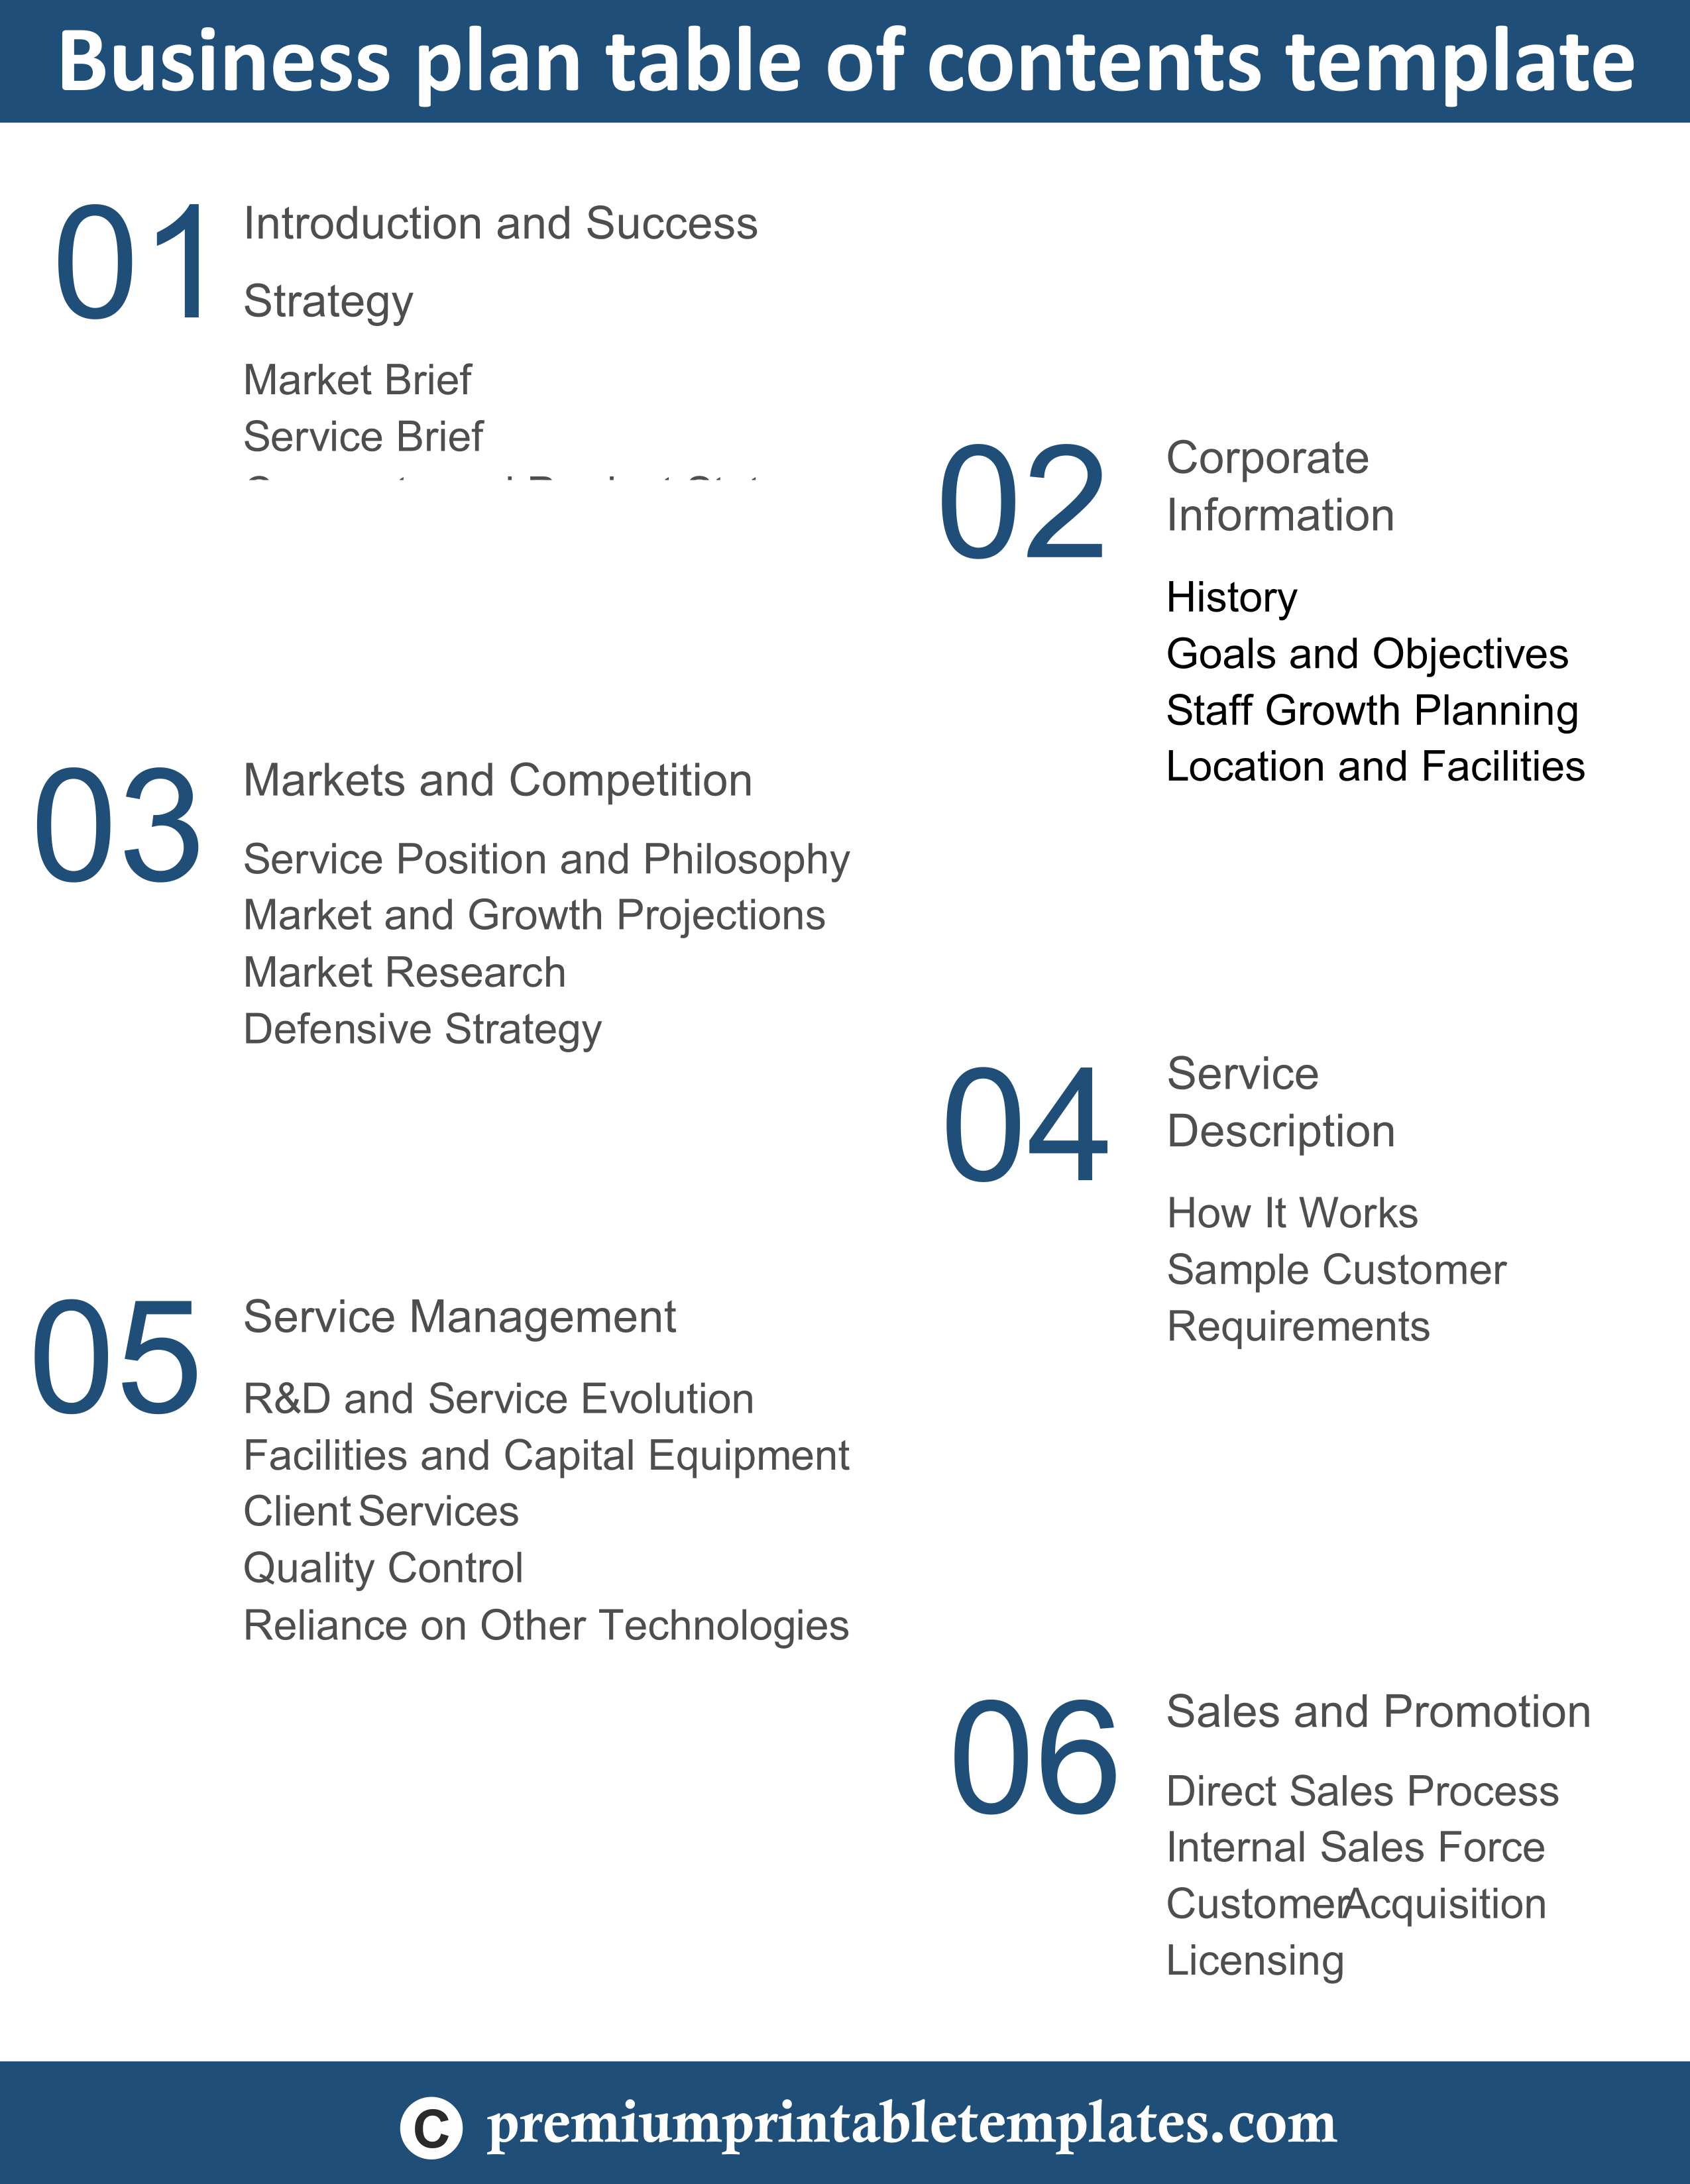 business plan table of contents templates helps you to find all